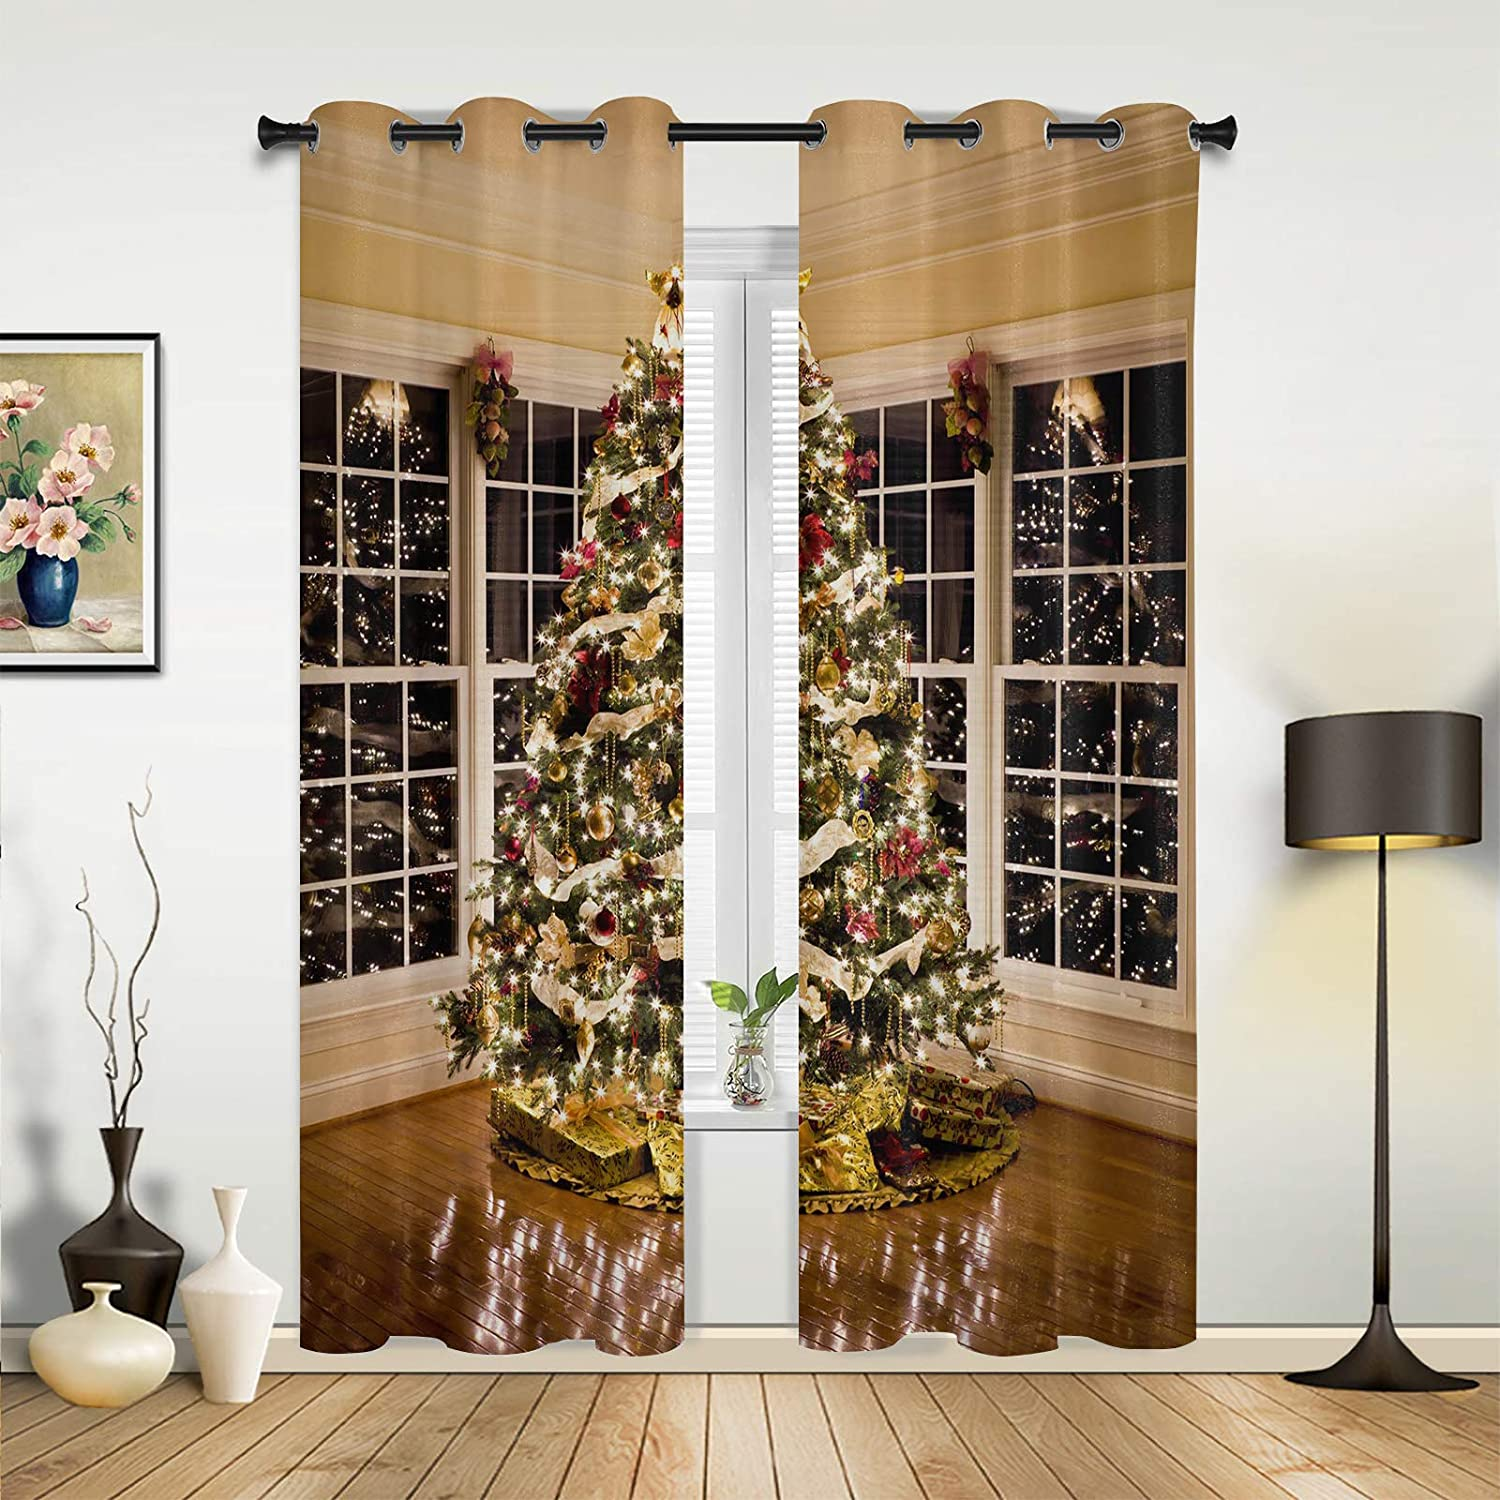 Beauty Soldering Decor Window Sheer Curtains Living Winte Bedroom Room High quality new for